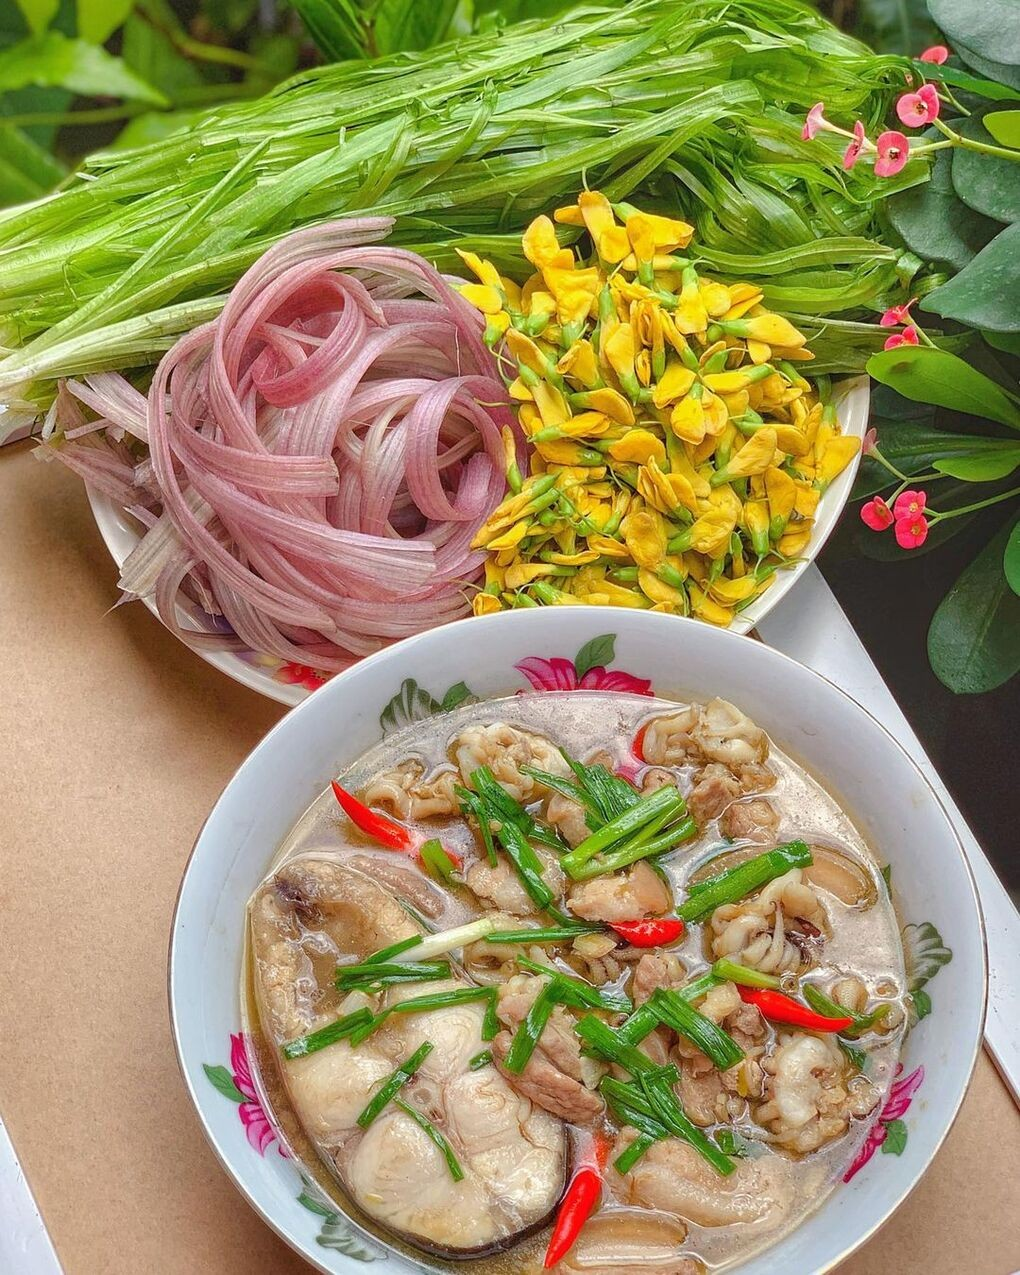 Three Specialties Used to be Seen as Weeds in Southern Vietnam